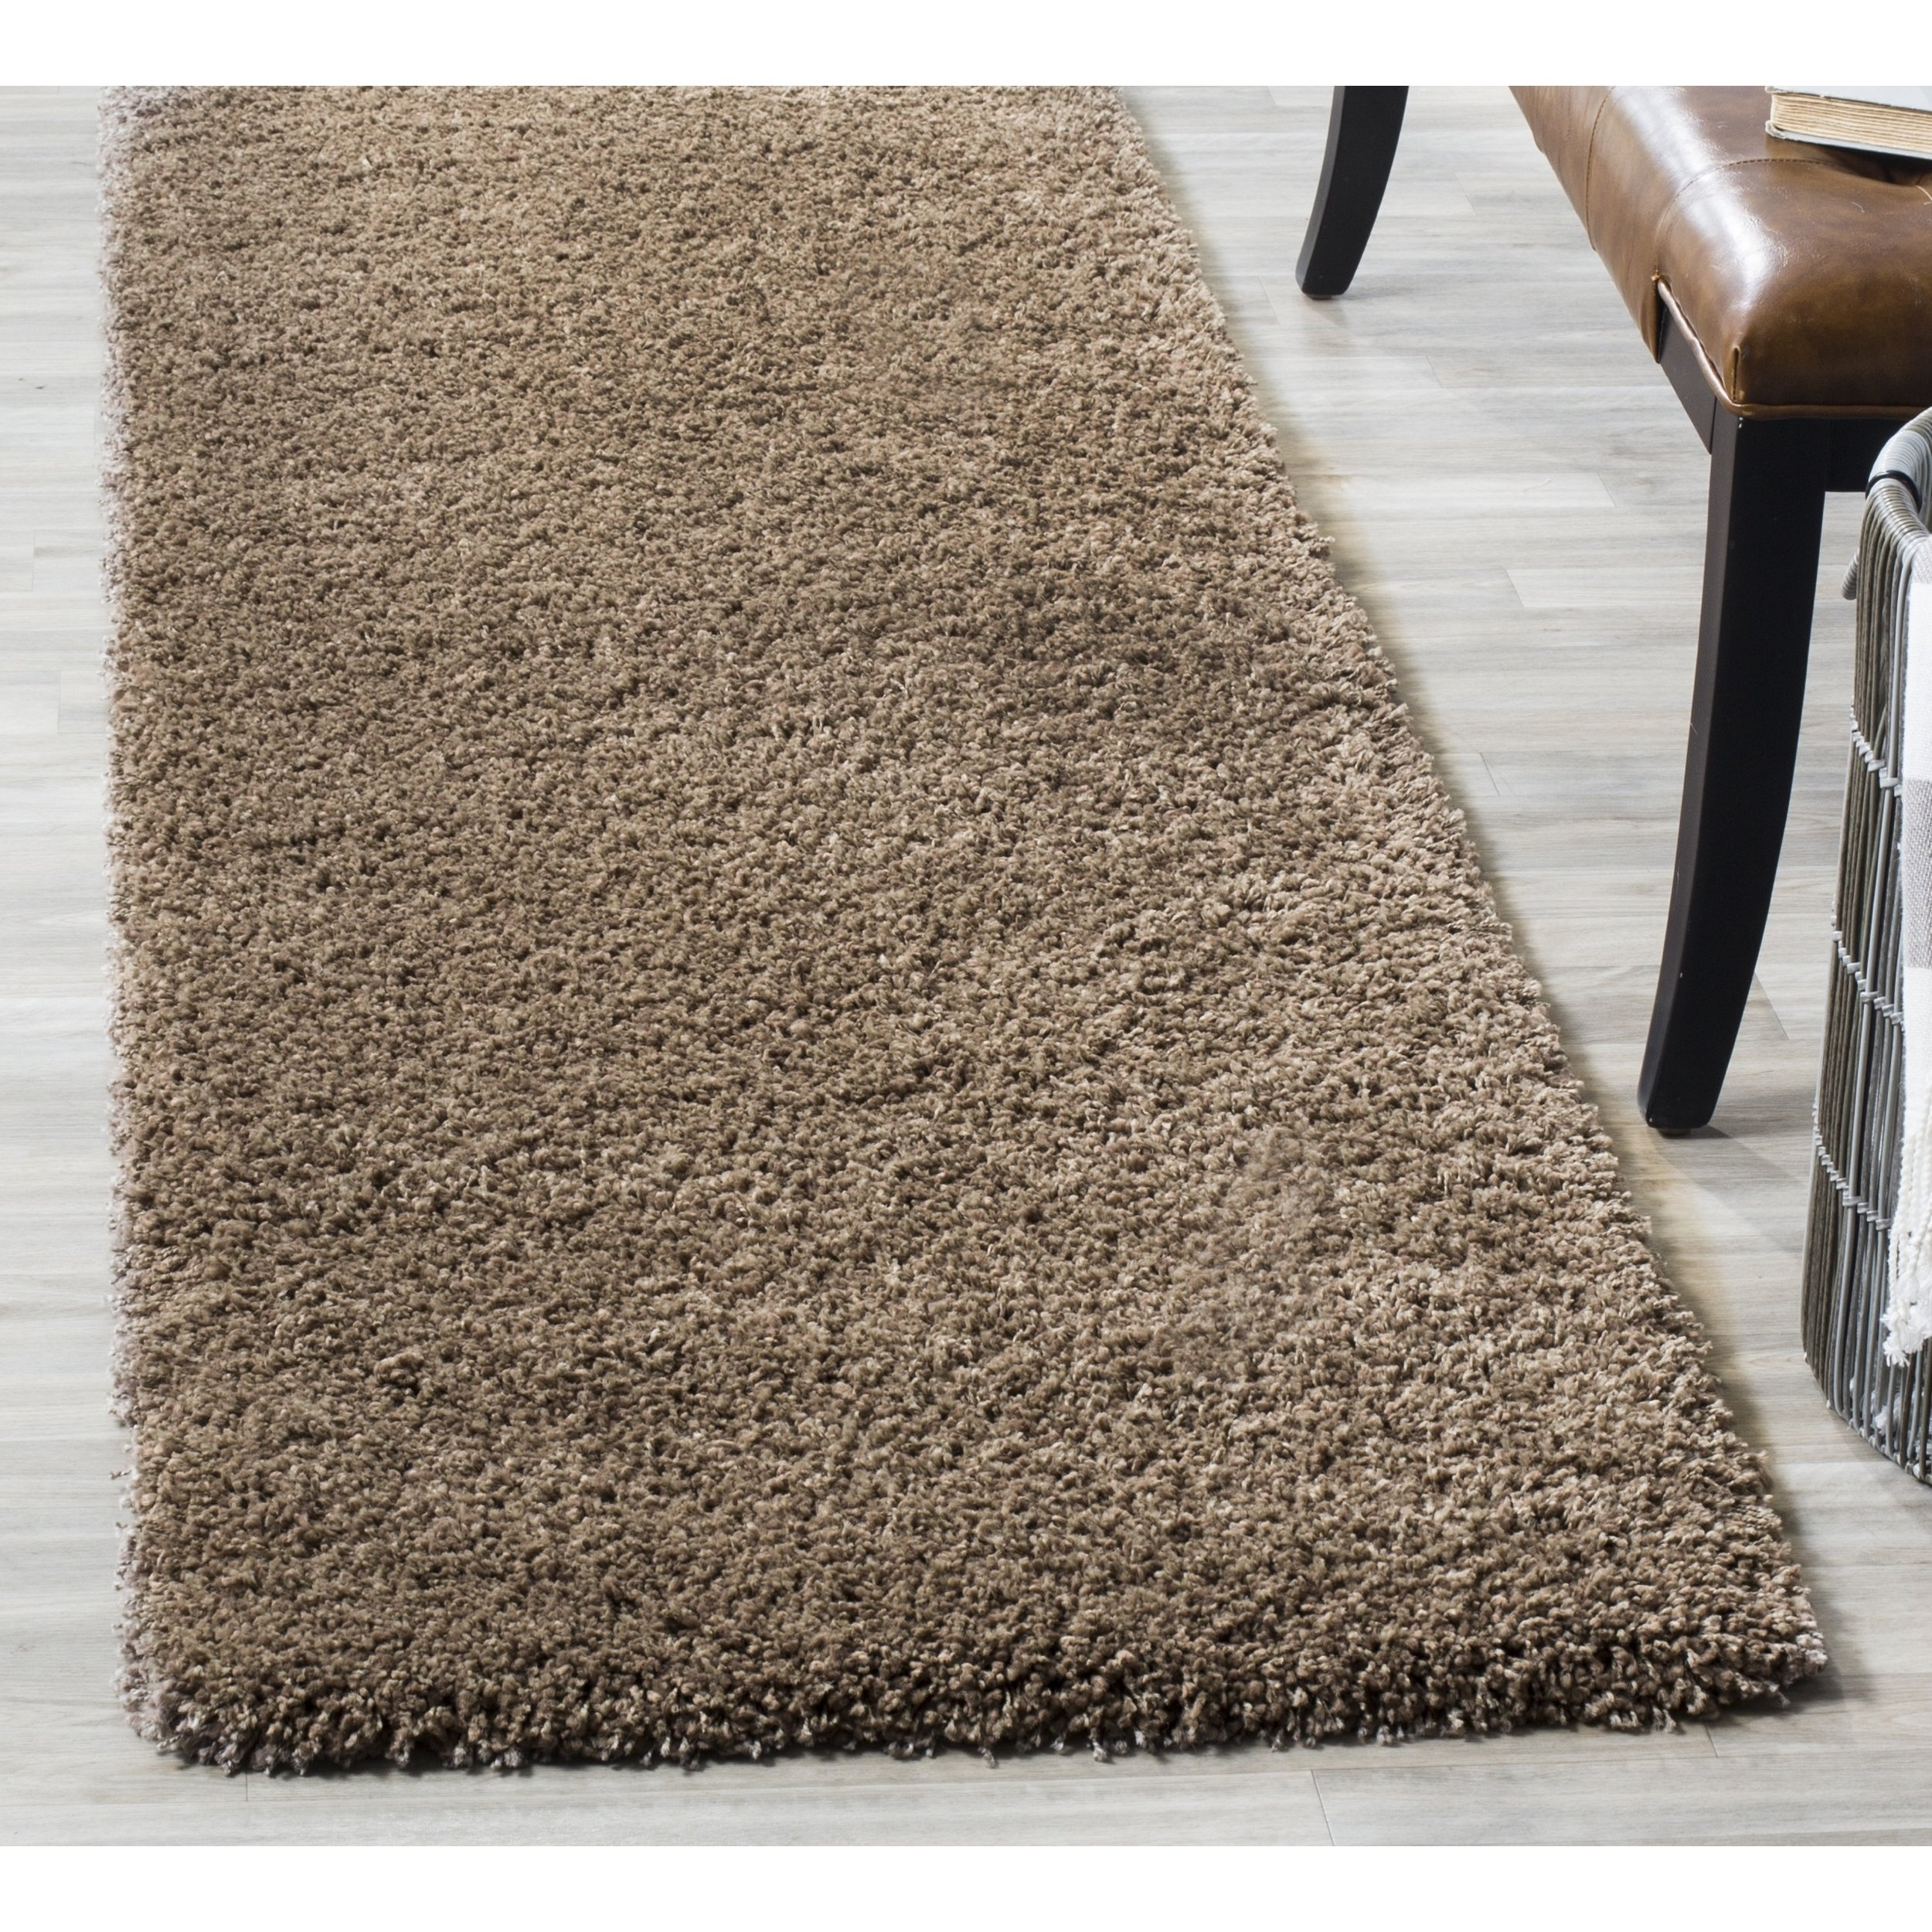 Safavieh Modern Plush Thick Shag Area Rug Soft Fluffy